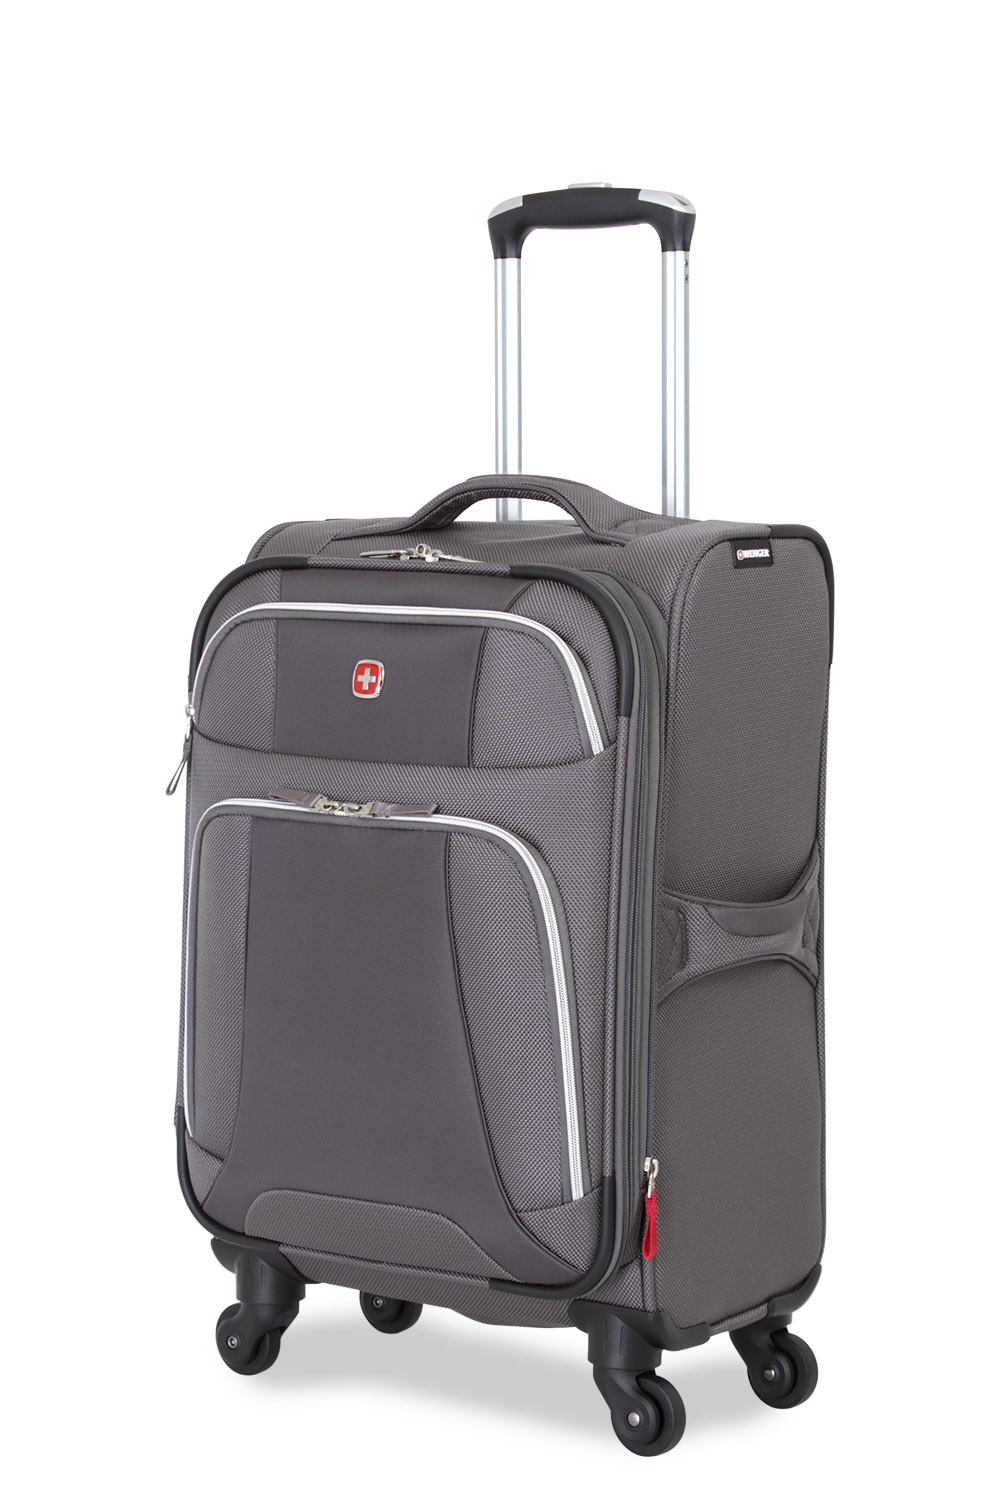 SWISSGEAR 7362 20 Expandable Liteweight Carry-On Spinner ...